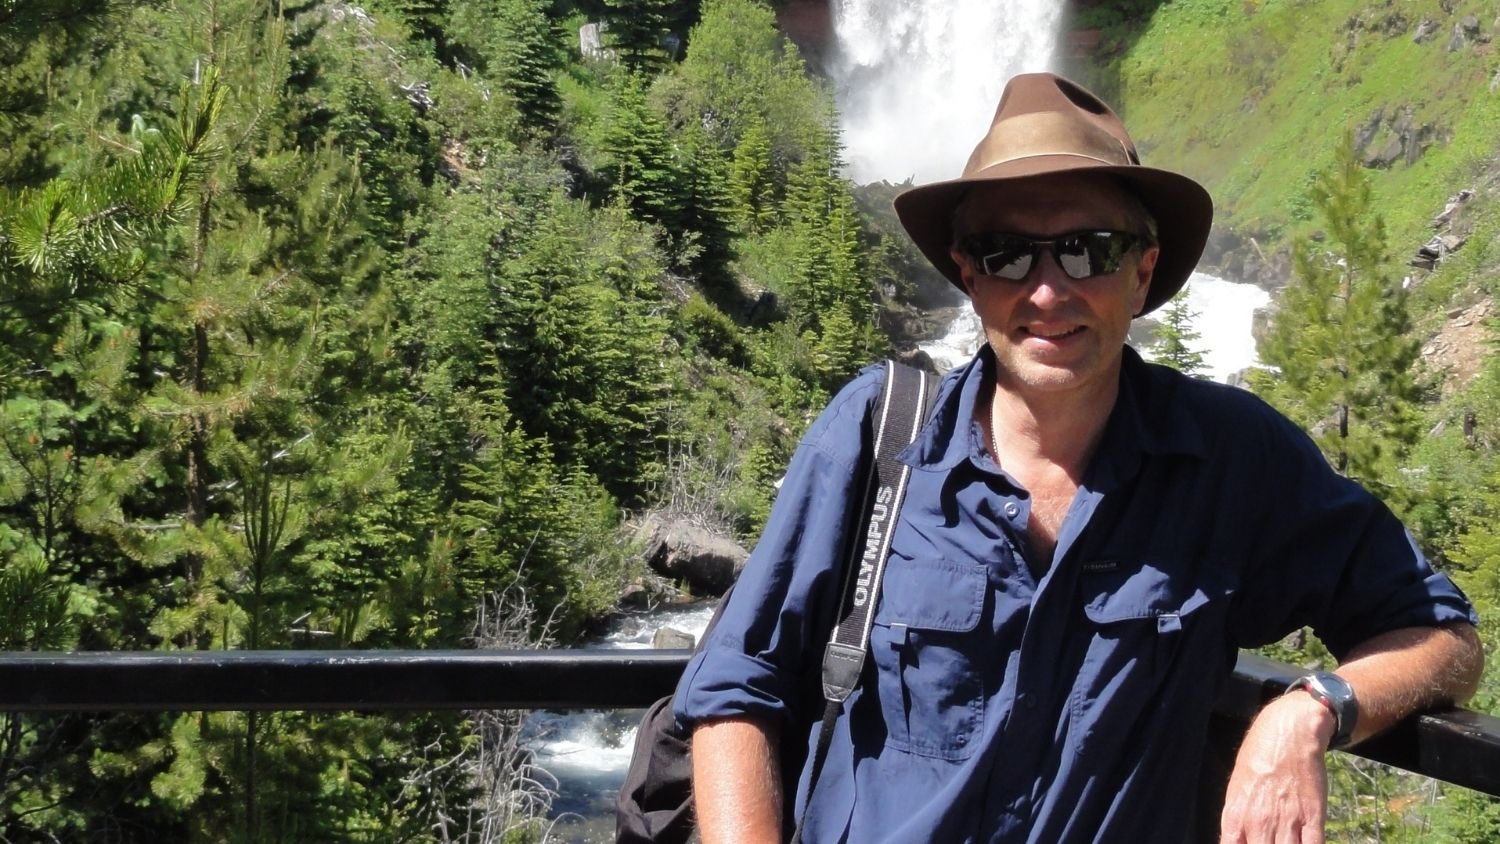 Professor George Hess is Helping Conserve Green Space in Urban Areas, College of Natural Resources, George Hess at Tumalo Falls, feature